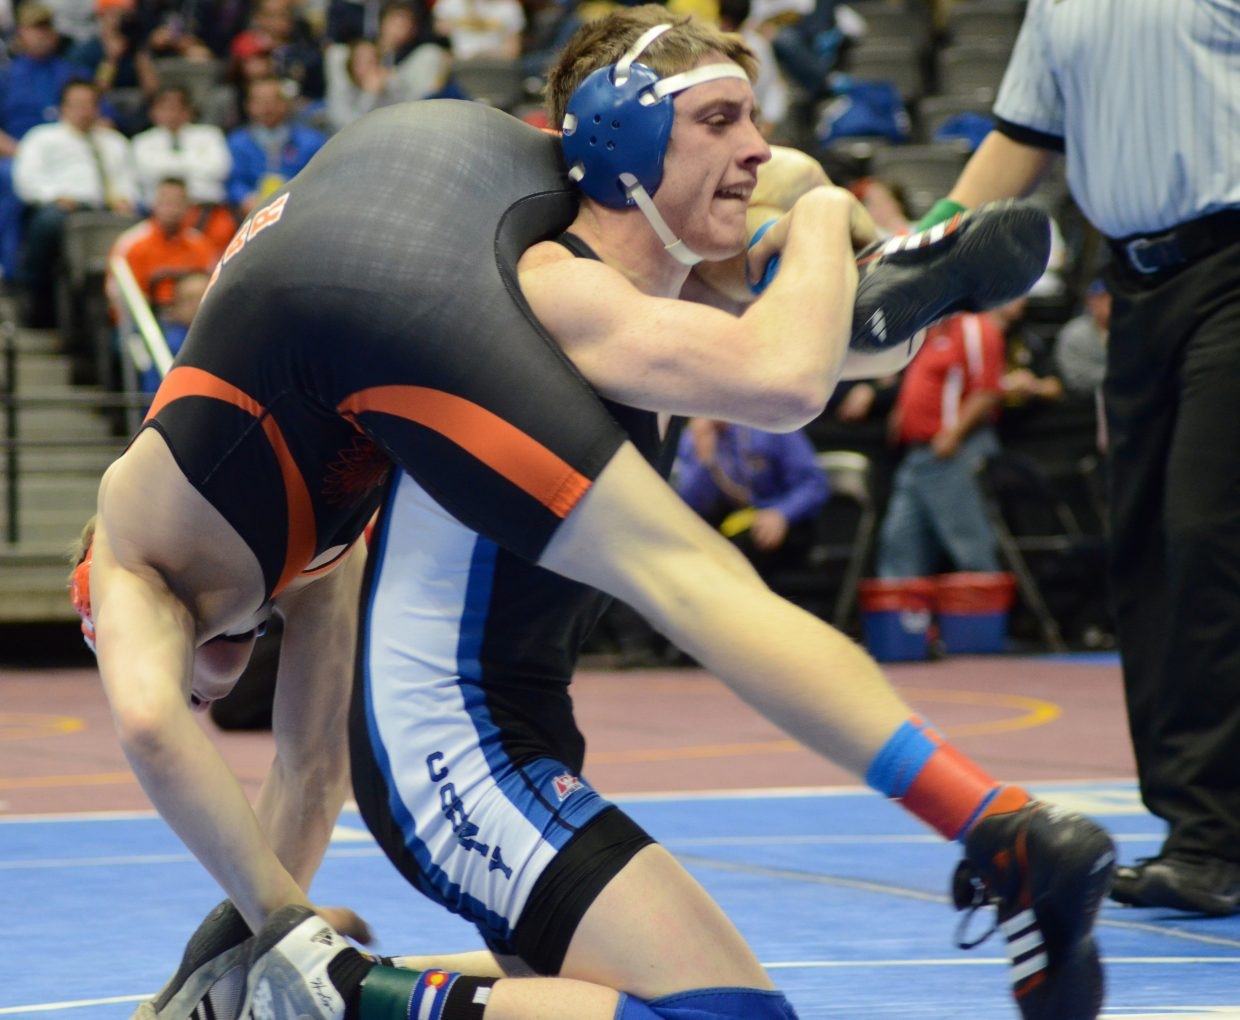 Brayden Peterson was unable to secure the takedowns he needed to be Lamar's Kaleb Hansen in the consolation second round.